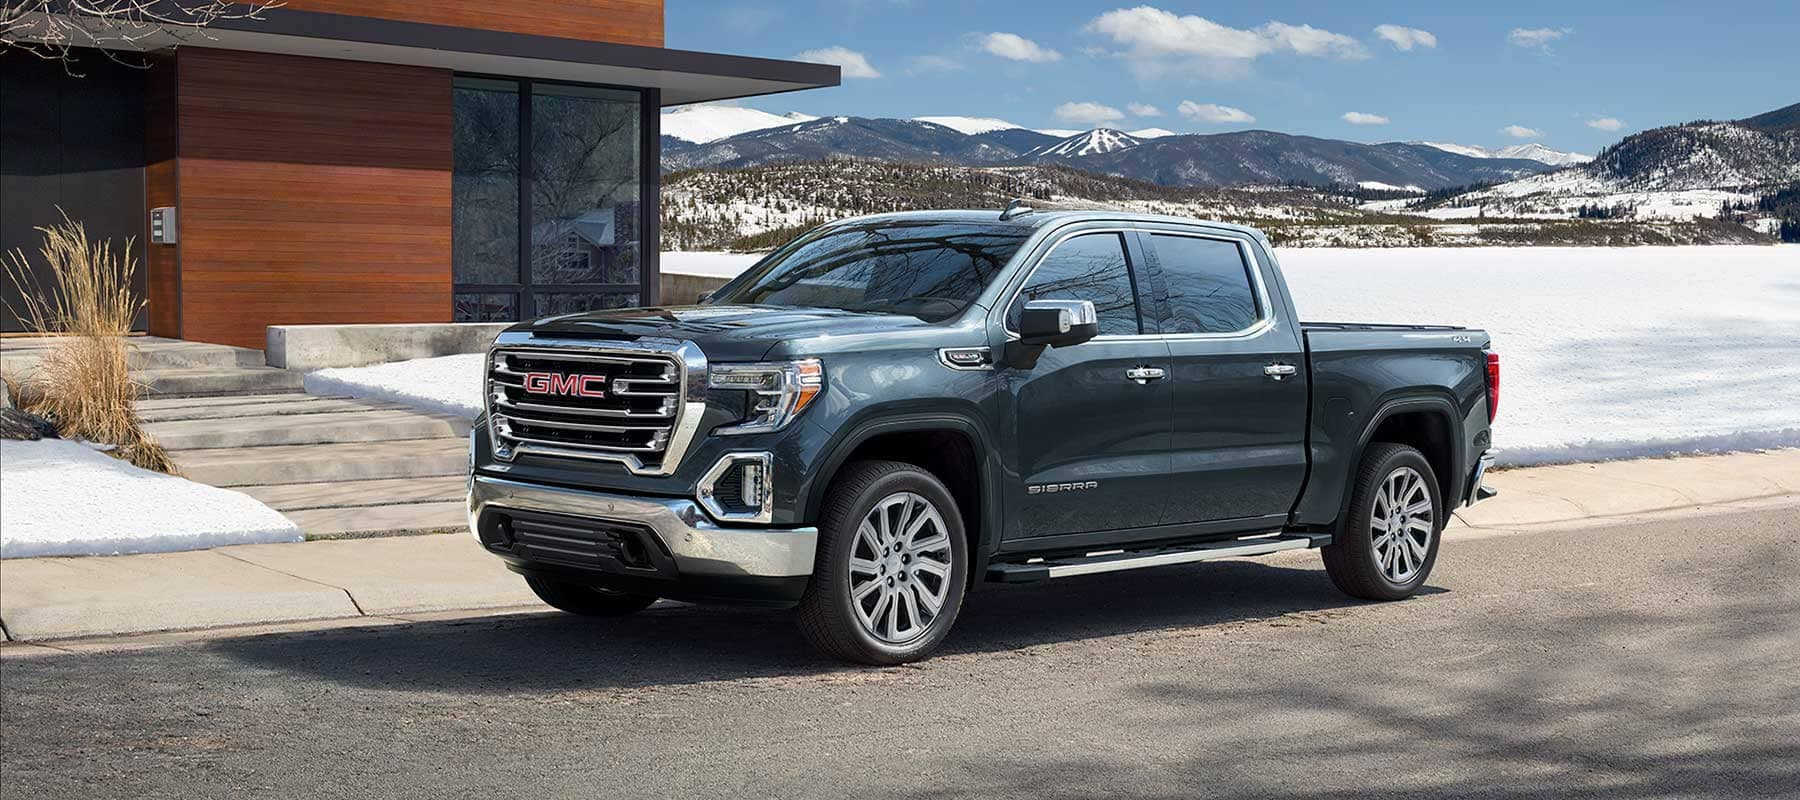 2019-GMC-Sierra-mountains